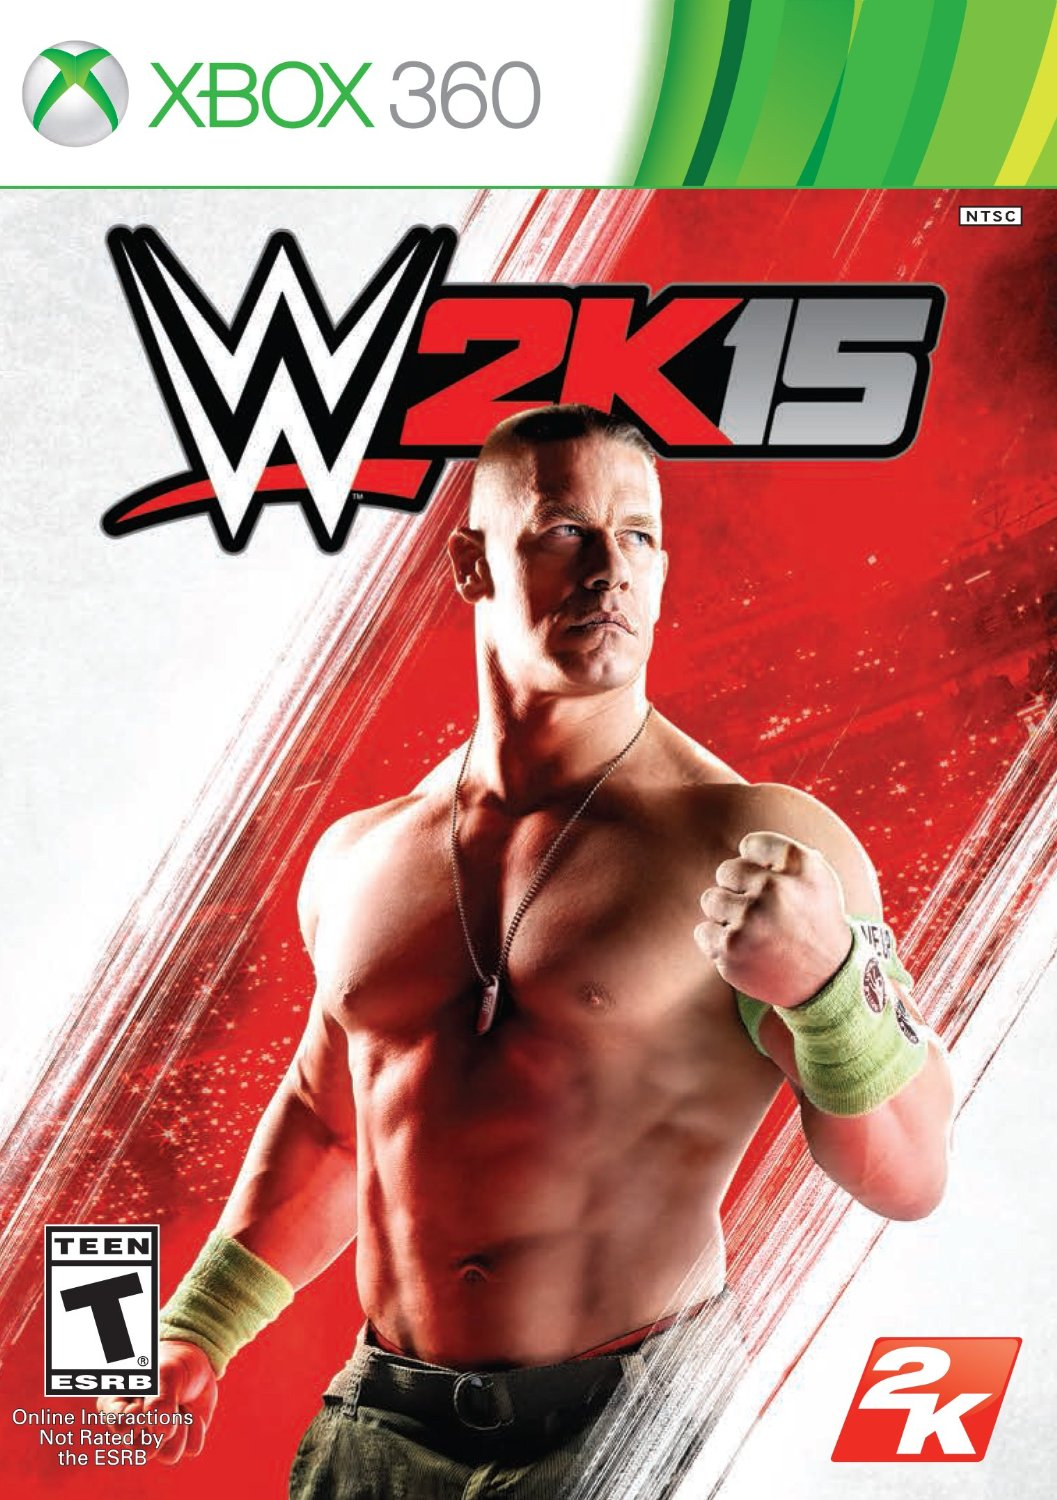 http://rozup.ir/up/narsis3/Pictures/WWE-2K15-xbox360-cover-large.jpg